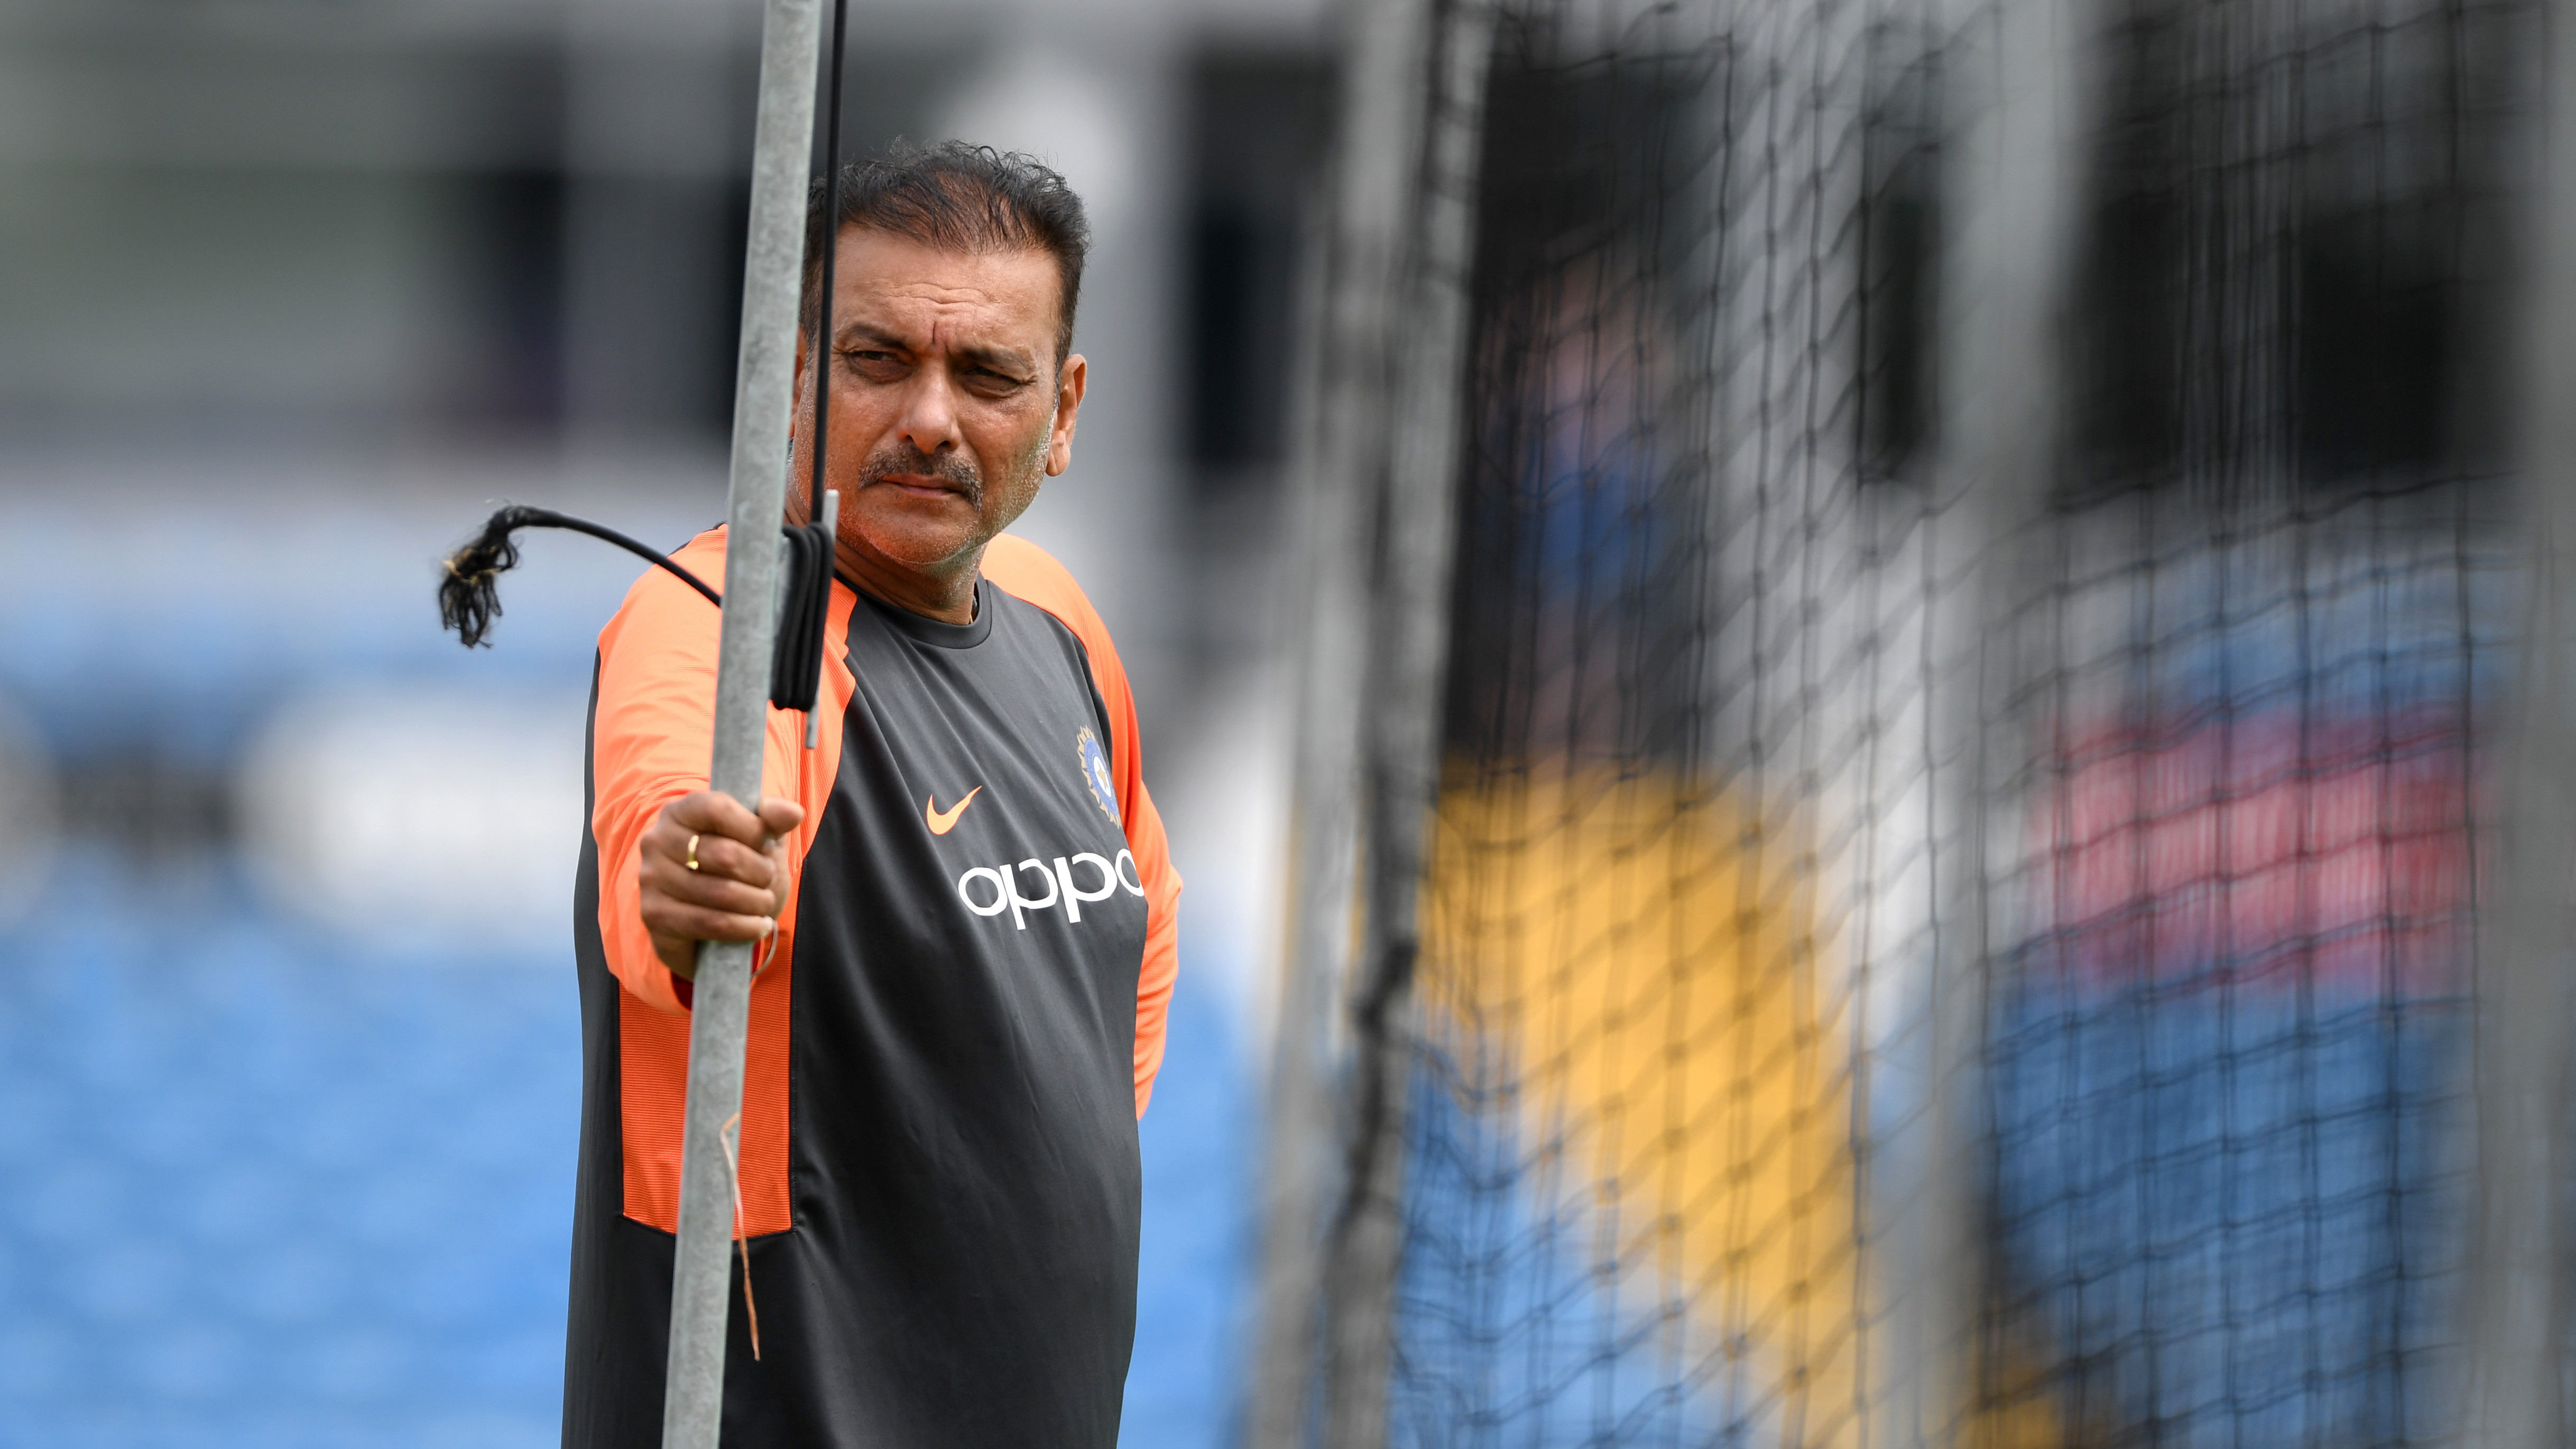 ENG vs IND 2018: Have requested for a couple of warm up games before the Test series in Australia, says Ravi Shastri